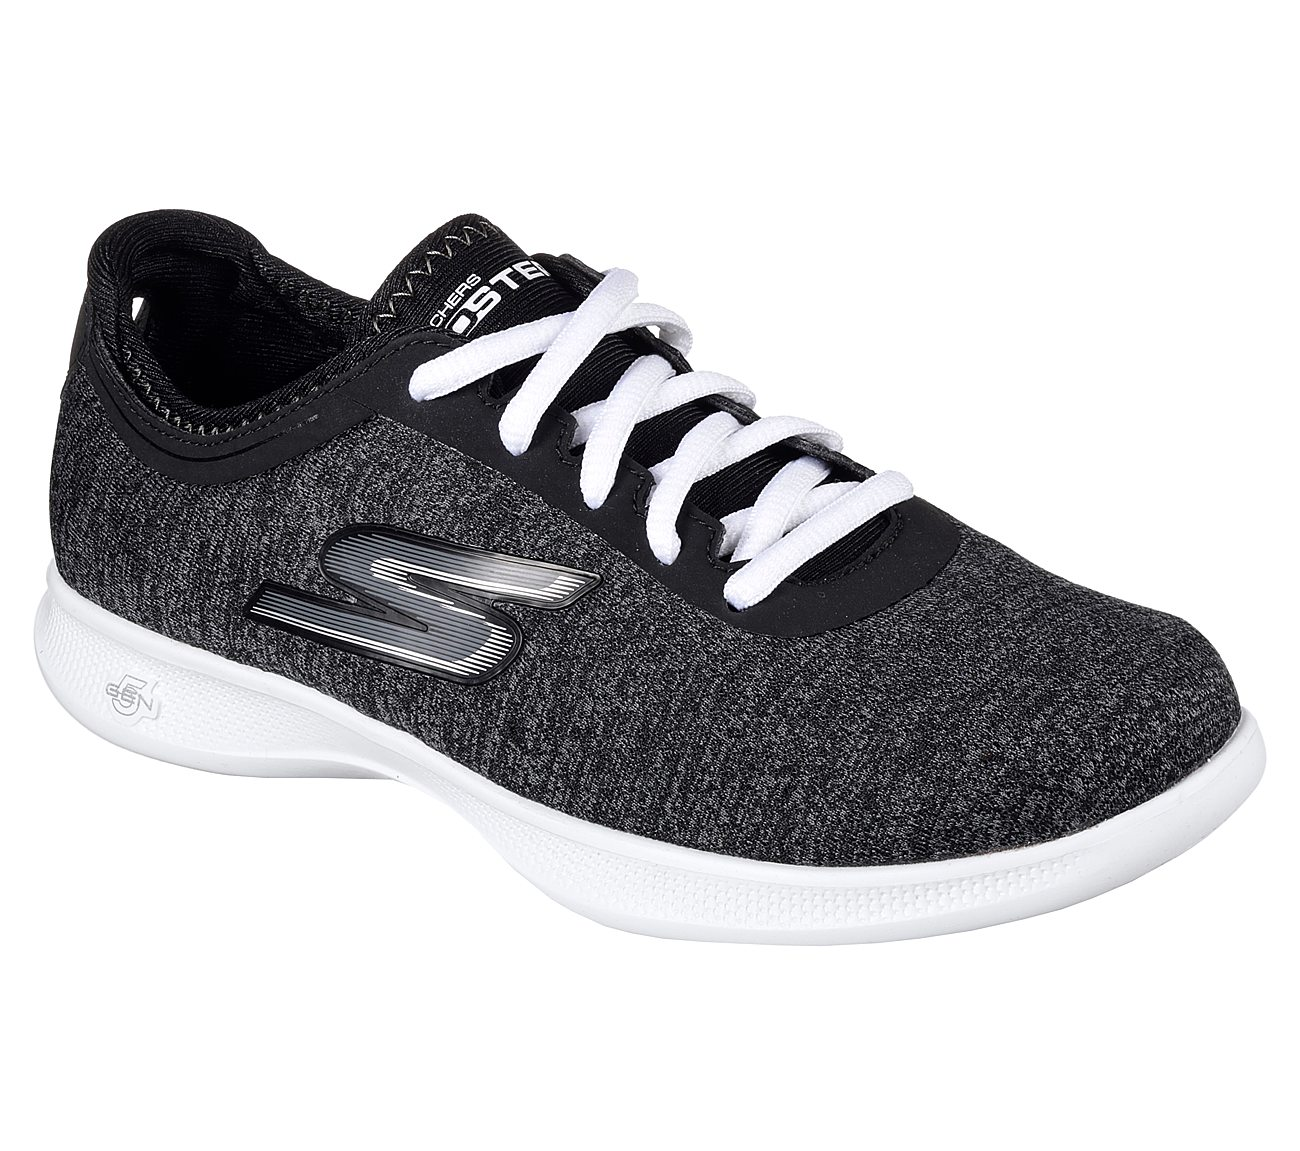 skechers go lite Black